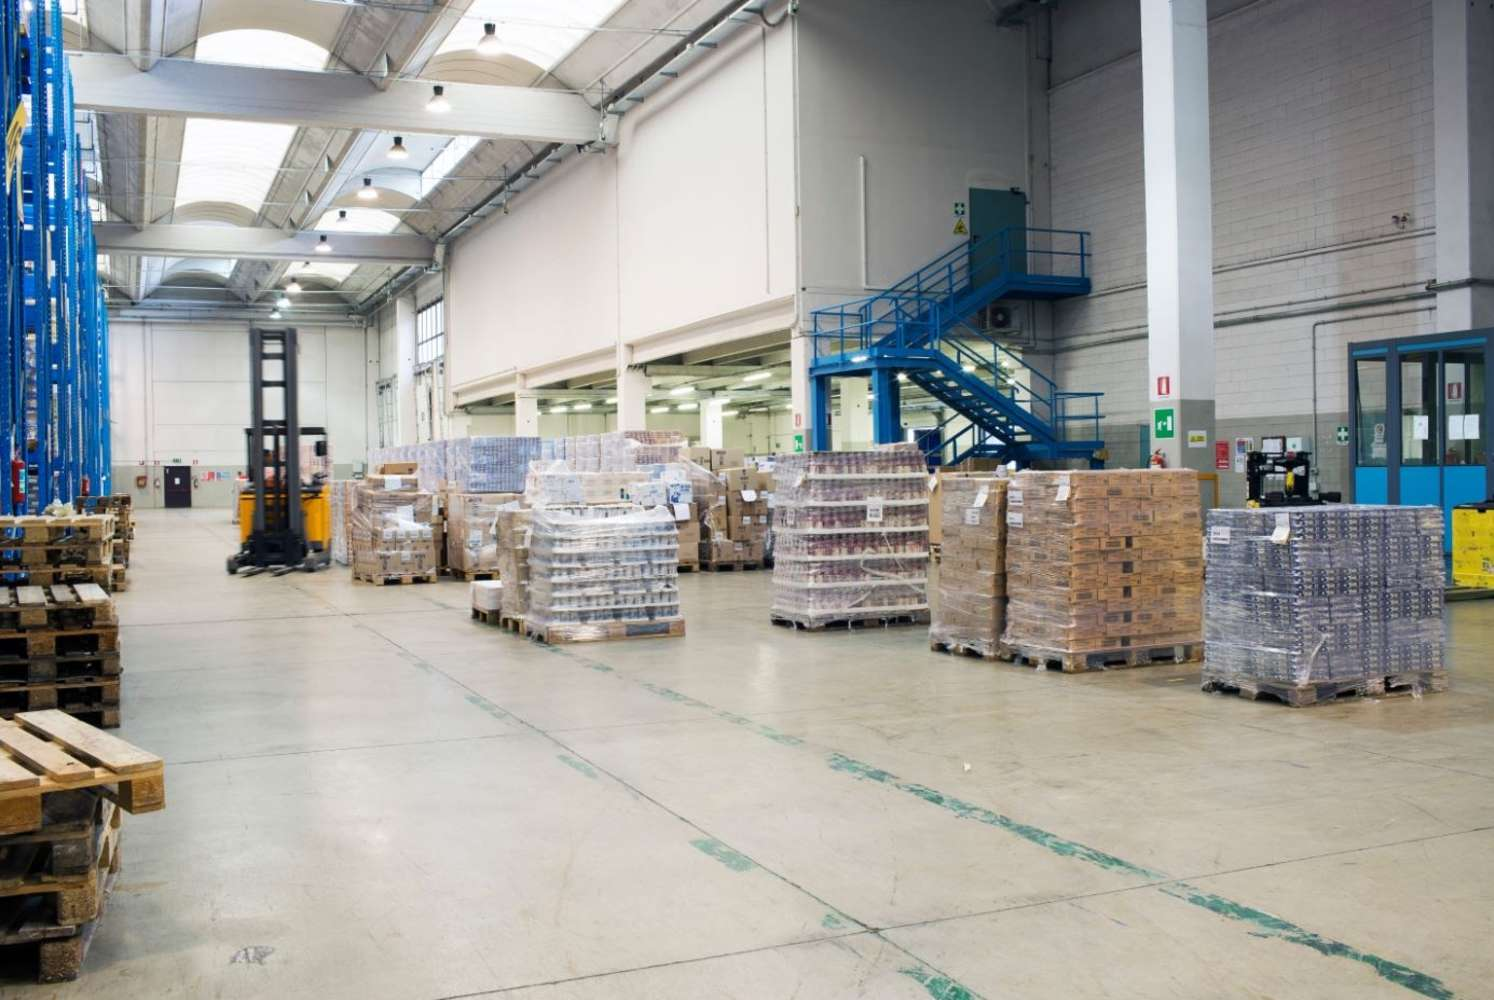 Magazzini industriali e logistici Brembio, 26822 - Brembio Warehouse